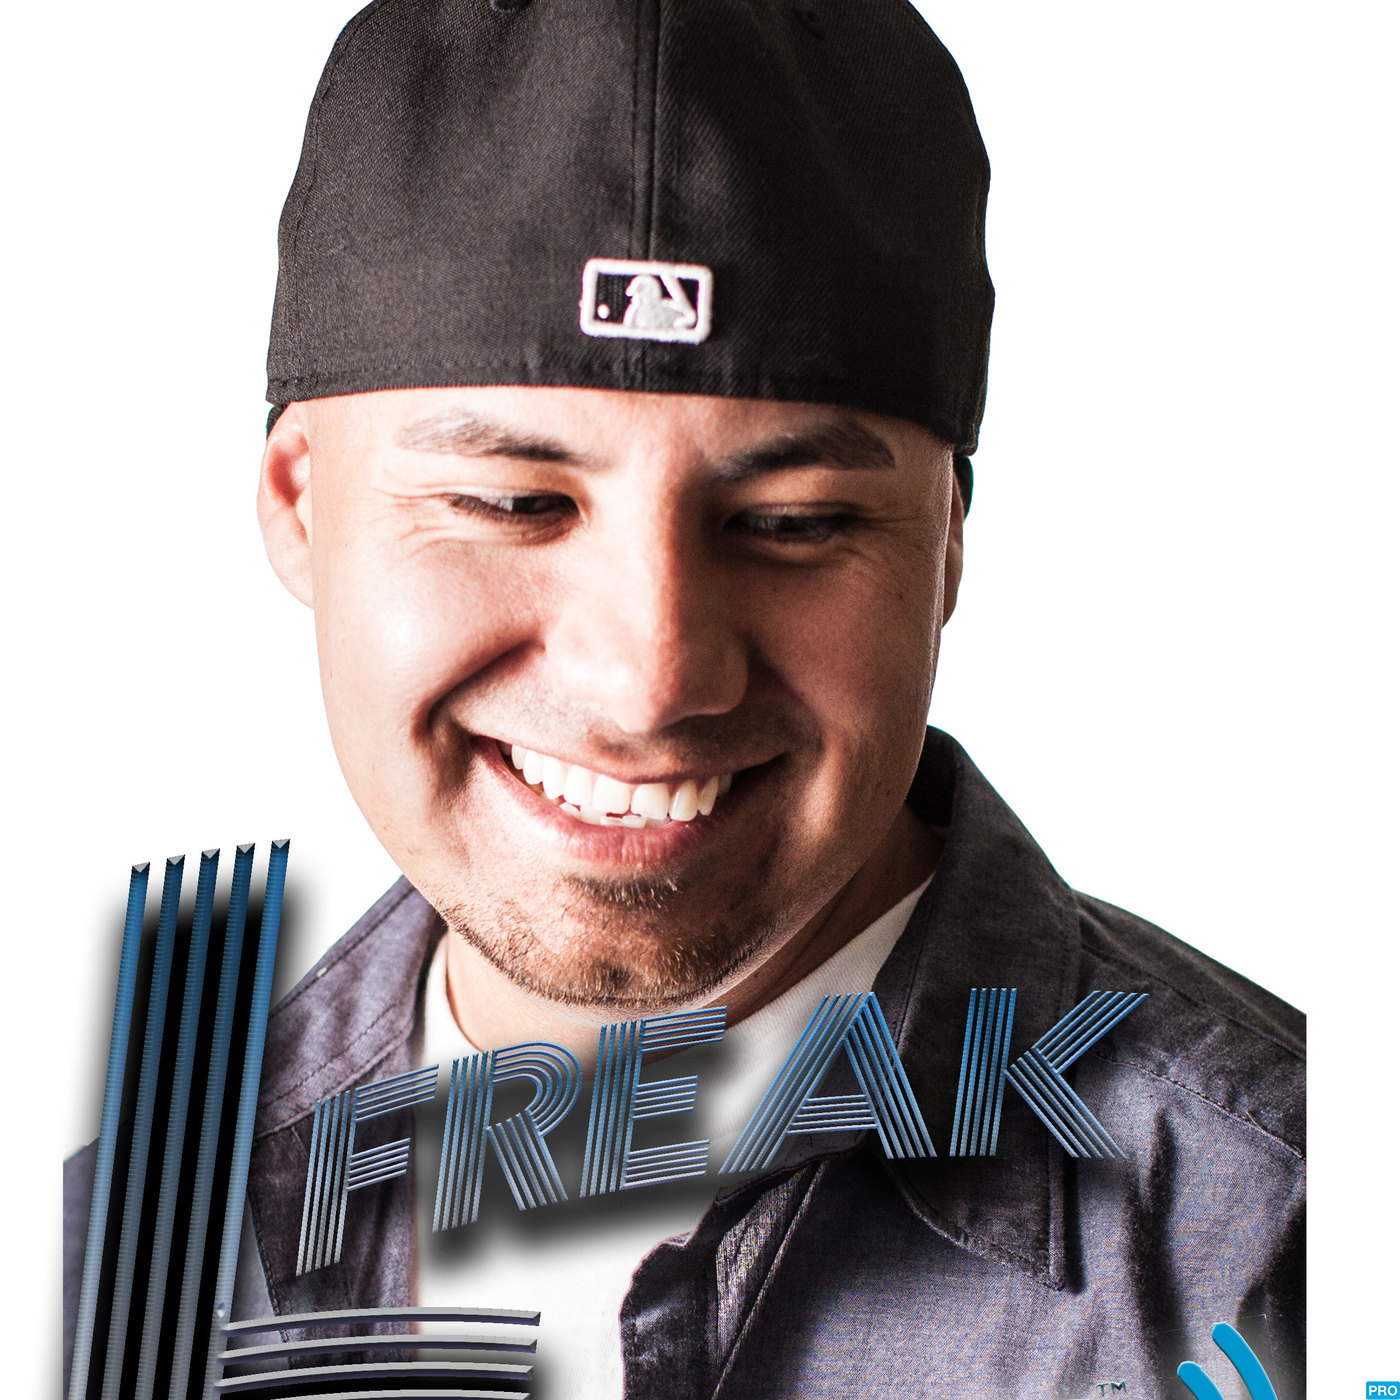 L.FREAK's Podcast